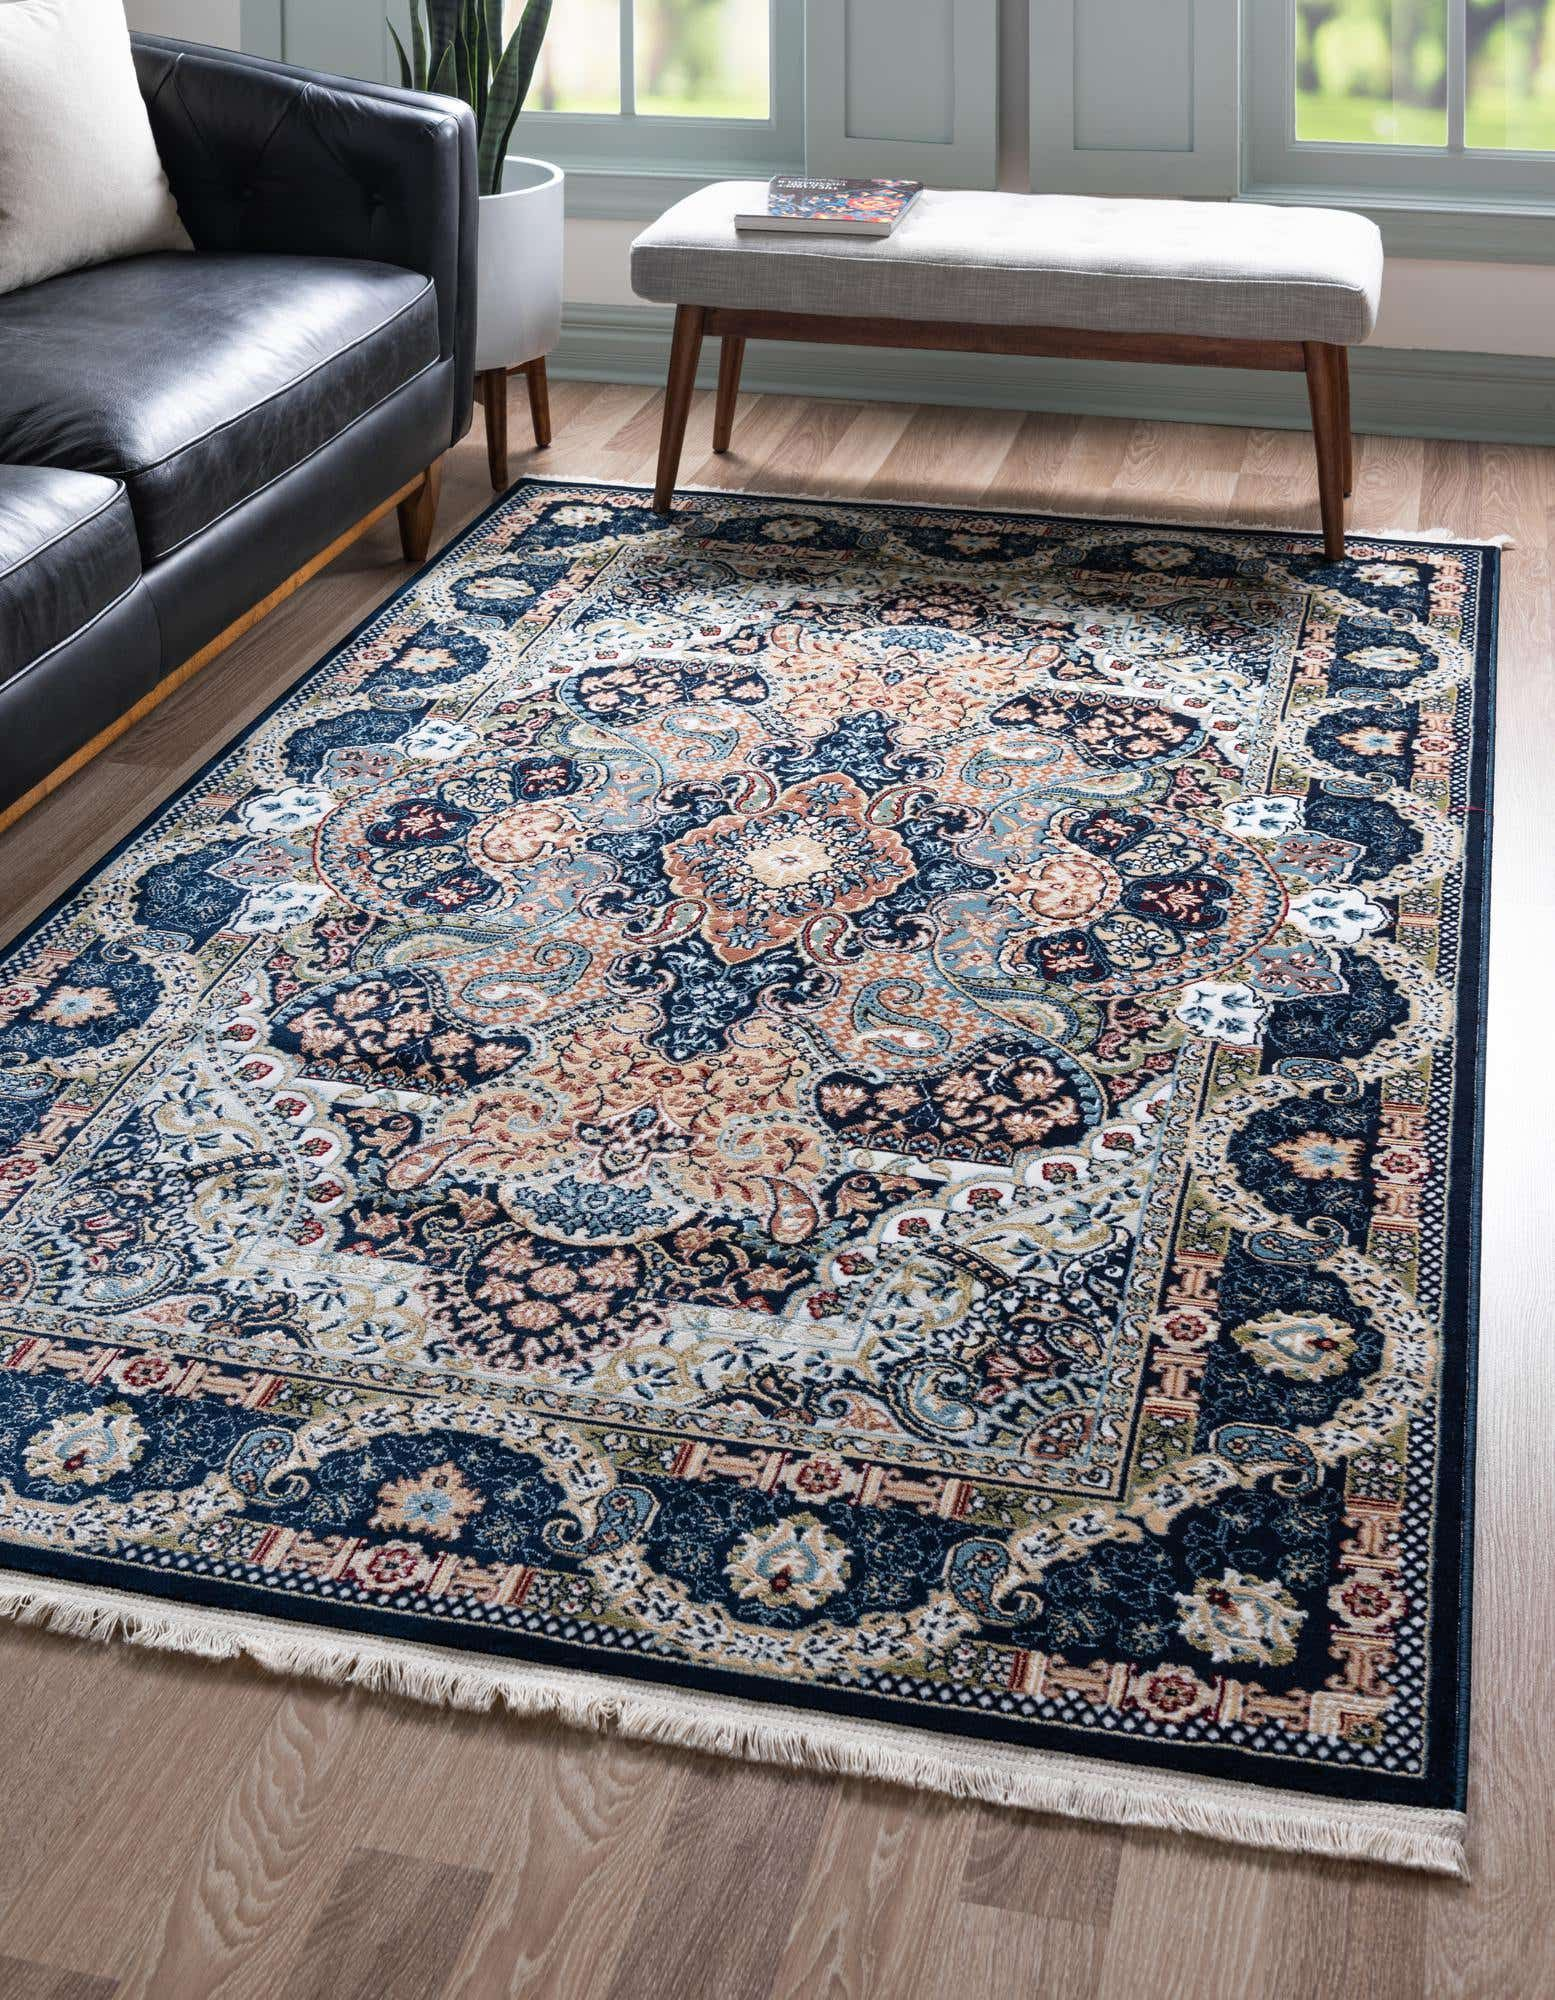 I Also Loved Their Blue 8x10 Rabia Area Rug 6271536 Rt Bbsiz